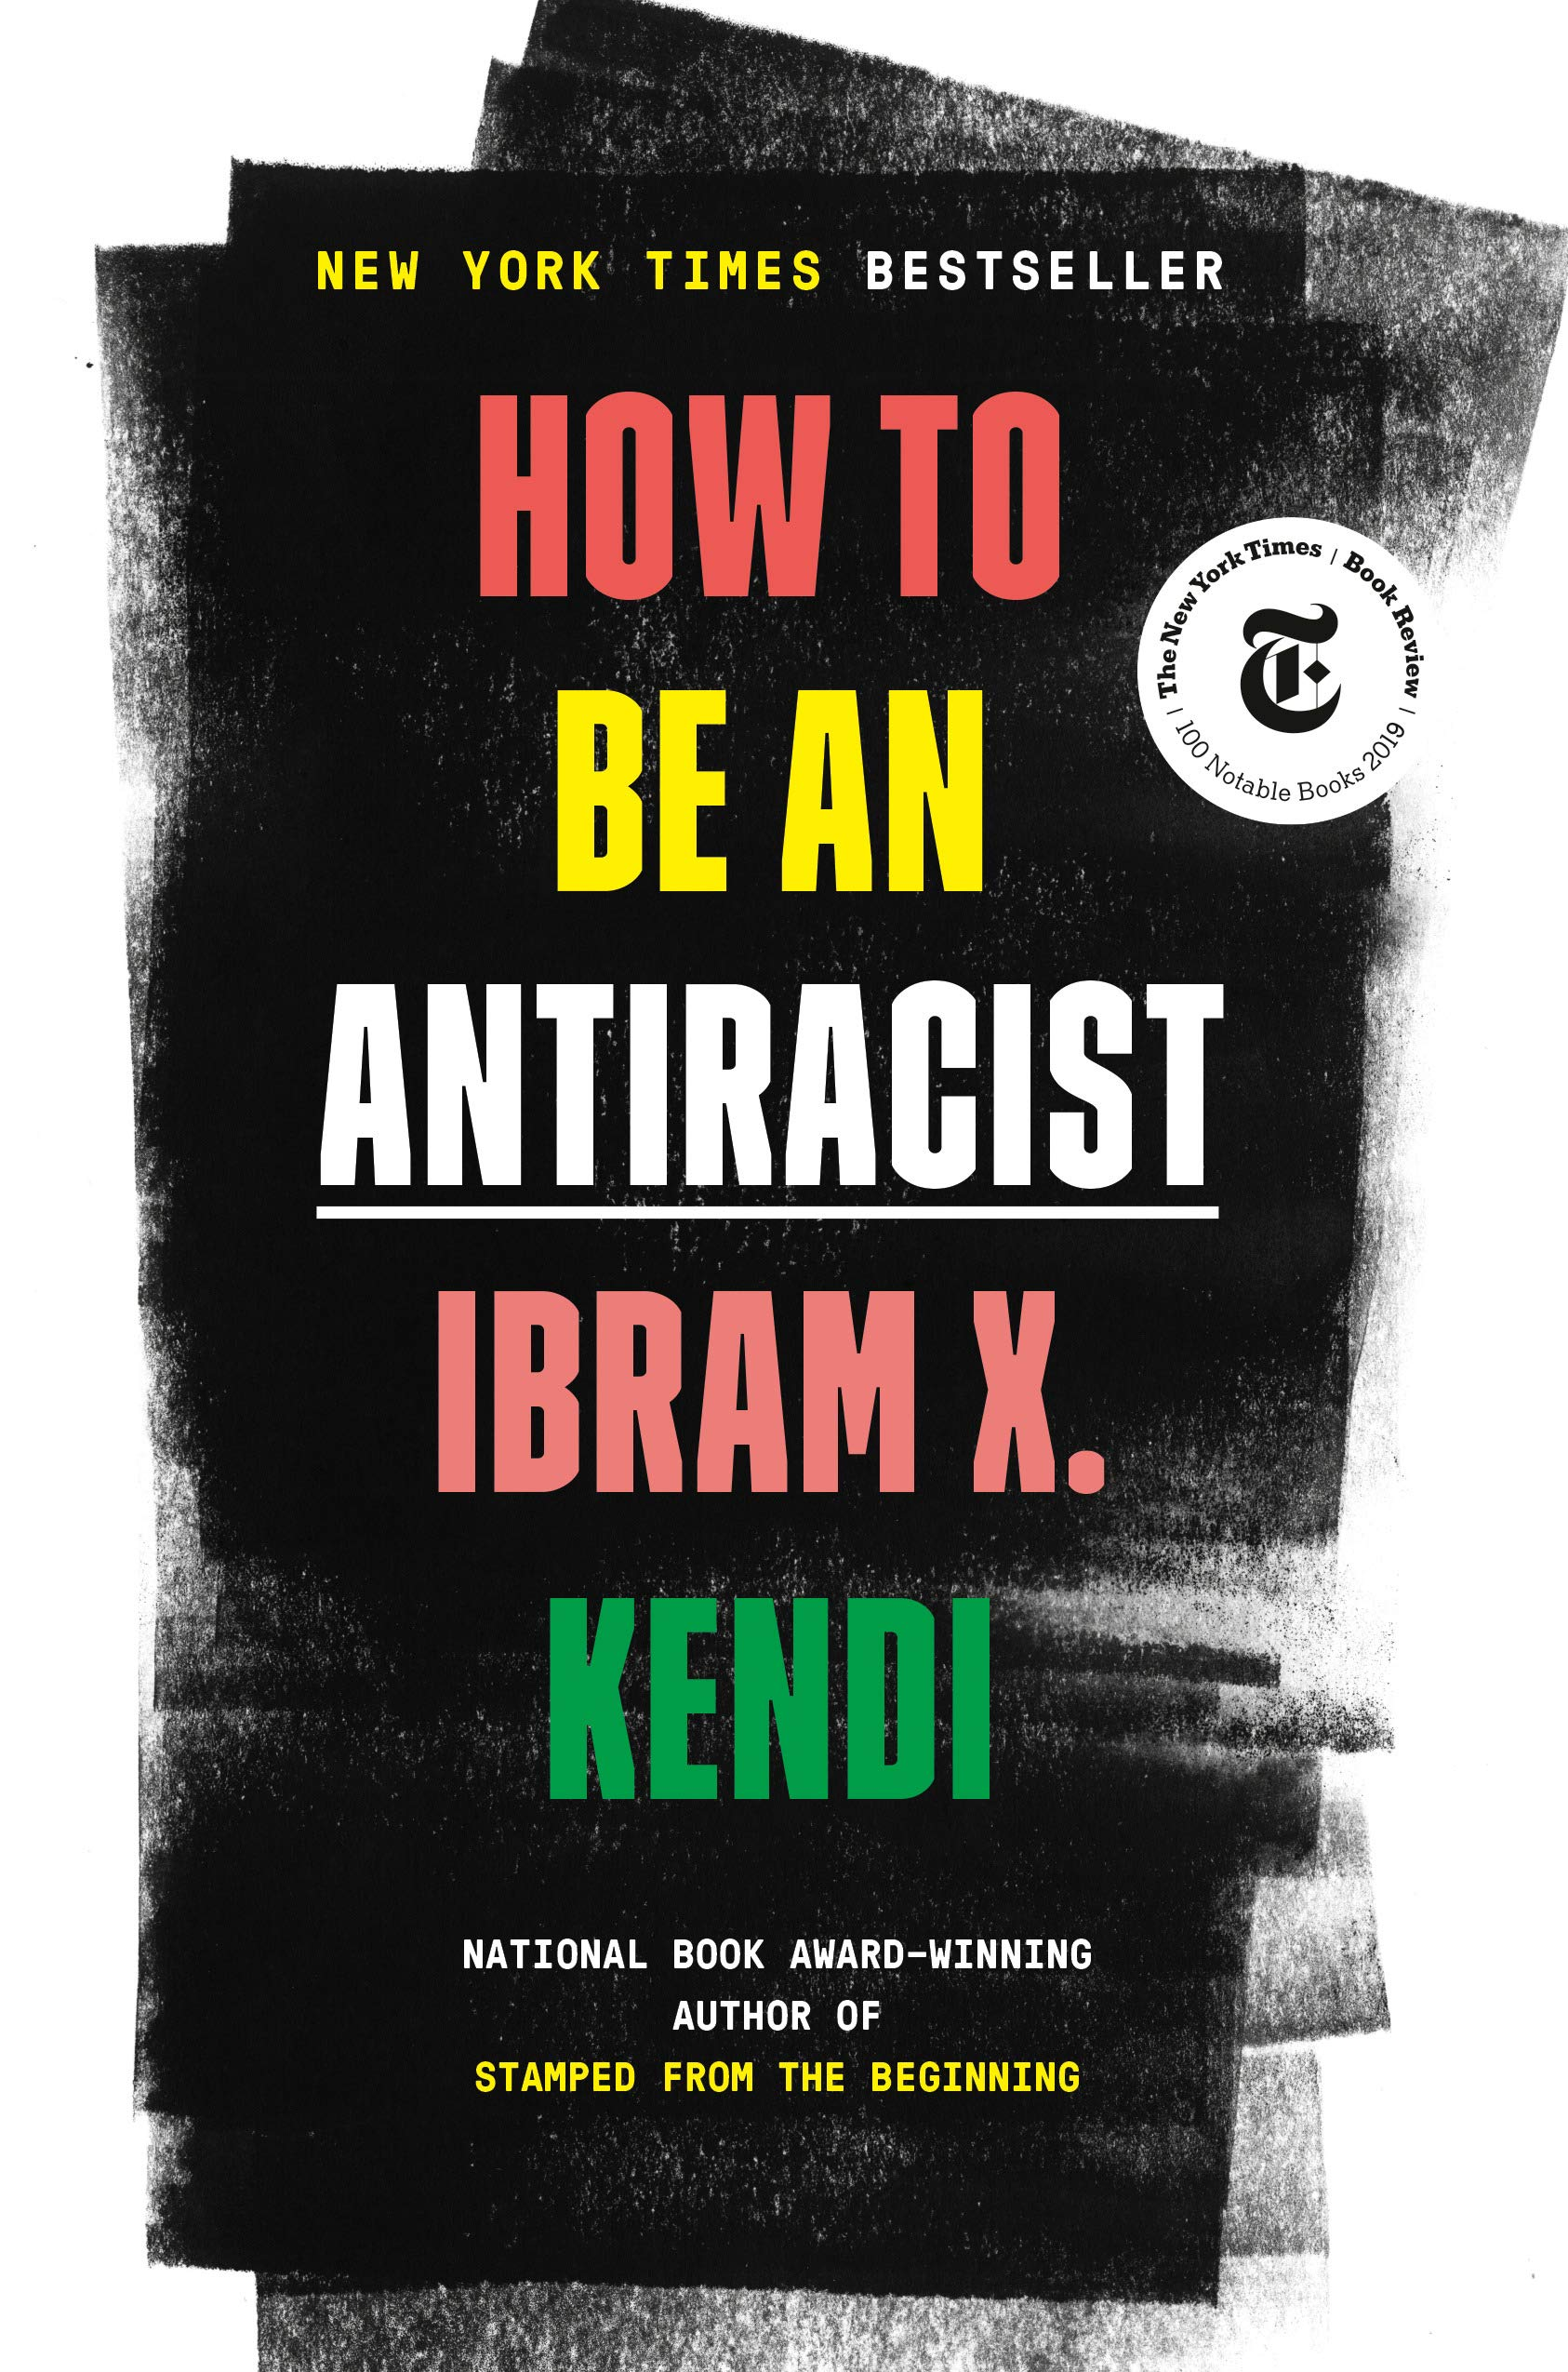 How to be an Antiracist by Ibram X. Kendi Reviewed by Susan Bazargan